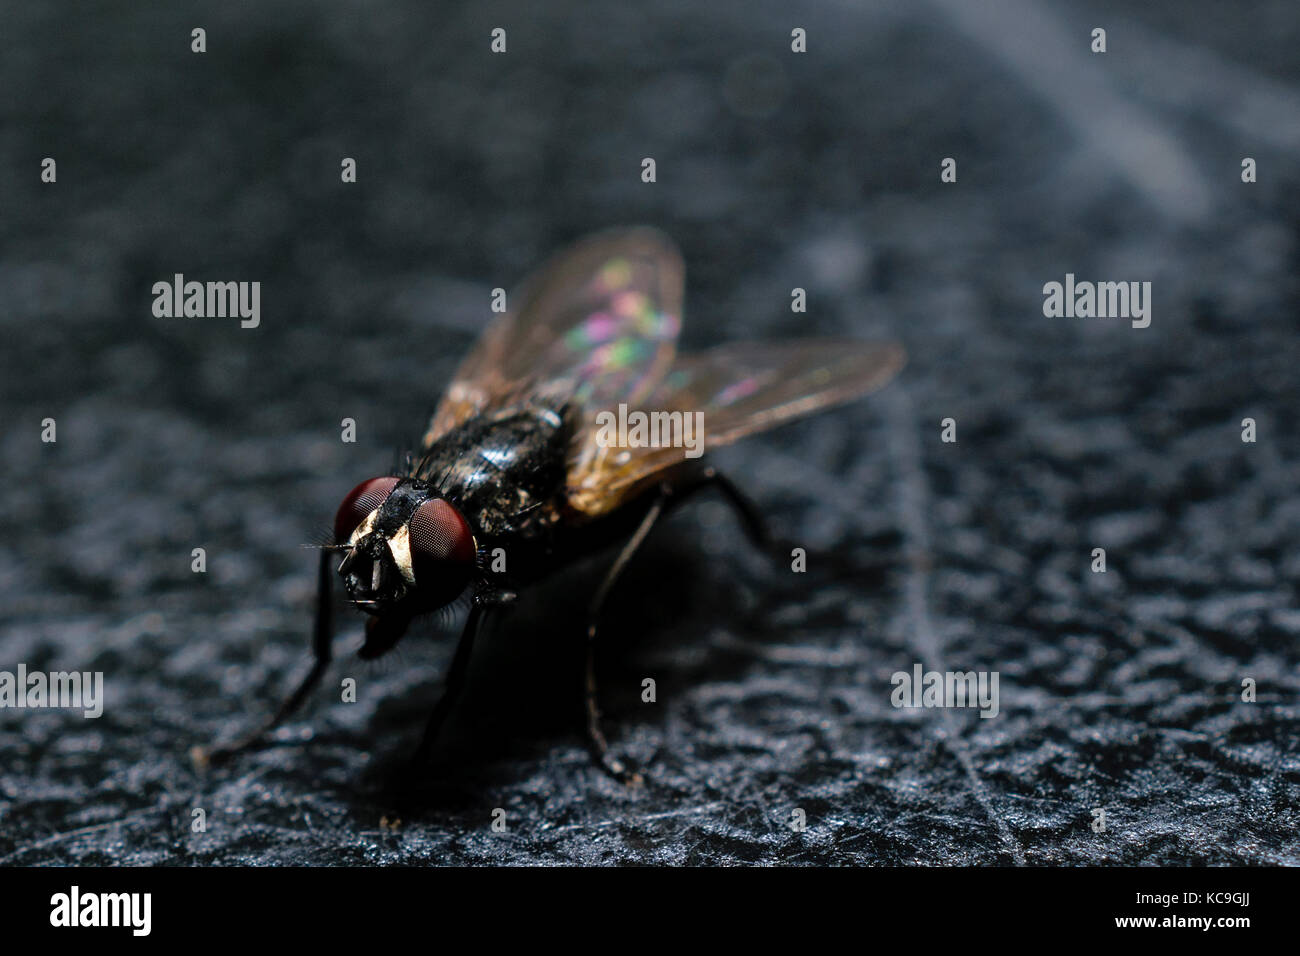 Extreme Close-Up Of Ordinary House Fly On Black Surface - Stock Image